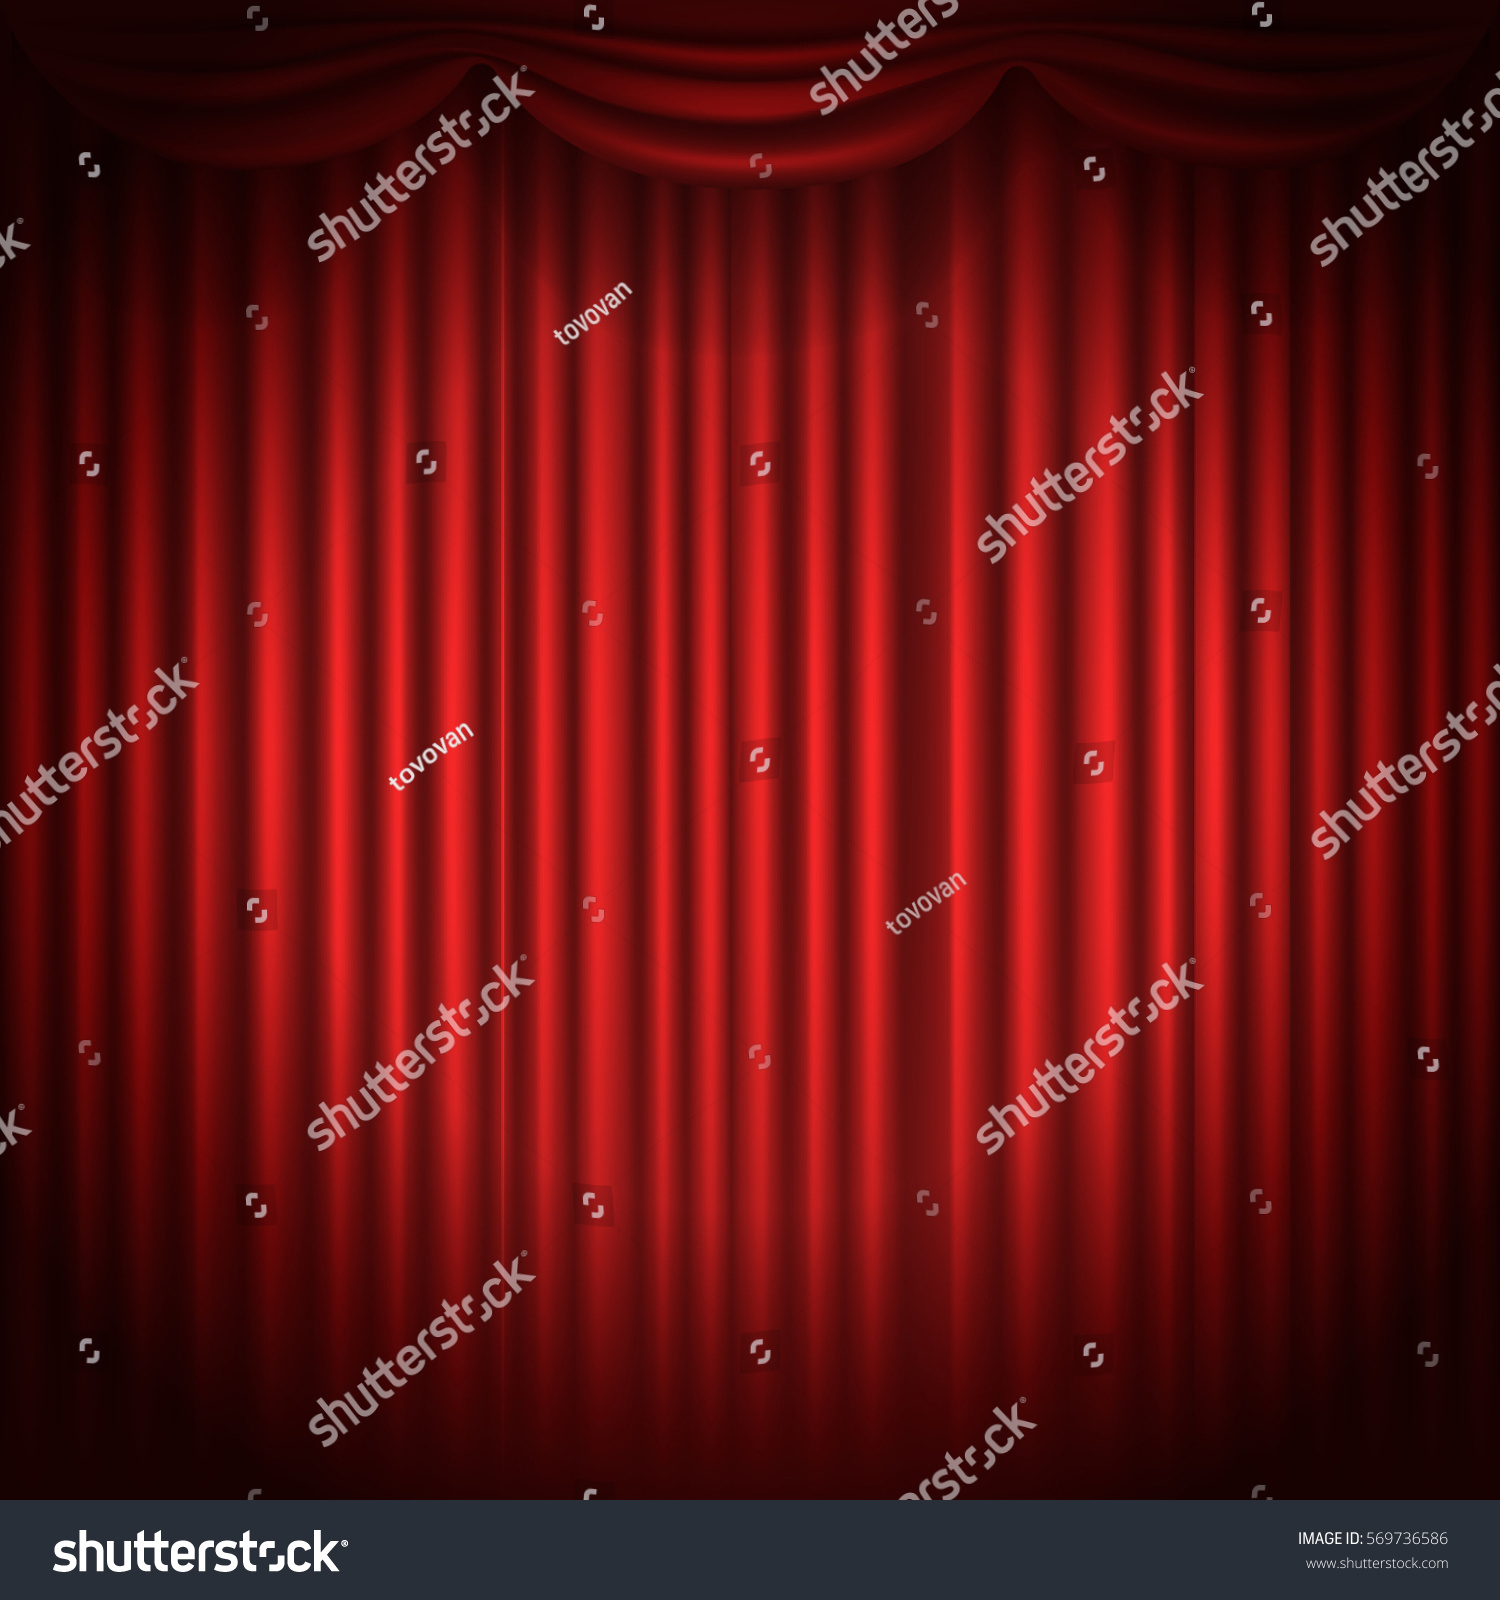 Theatre curtains png - Stage Curtains With Spot Light Vector Illustration